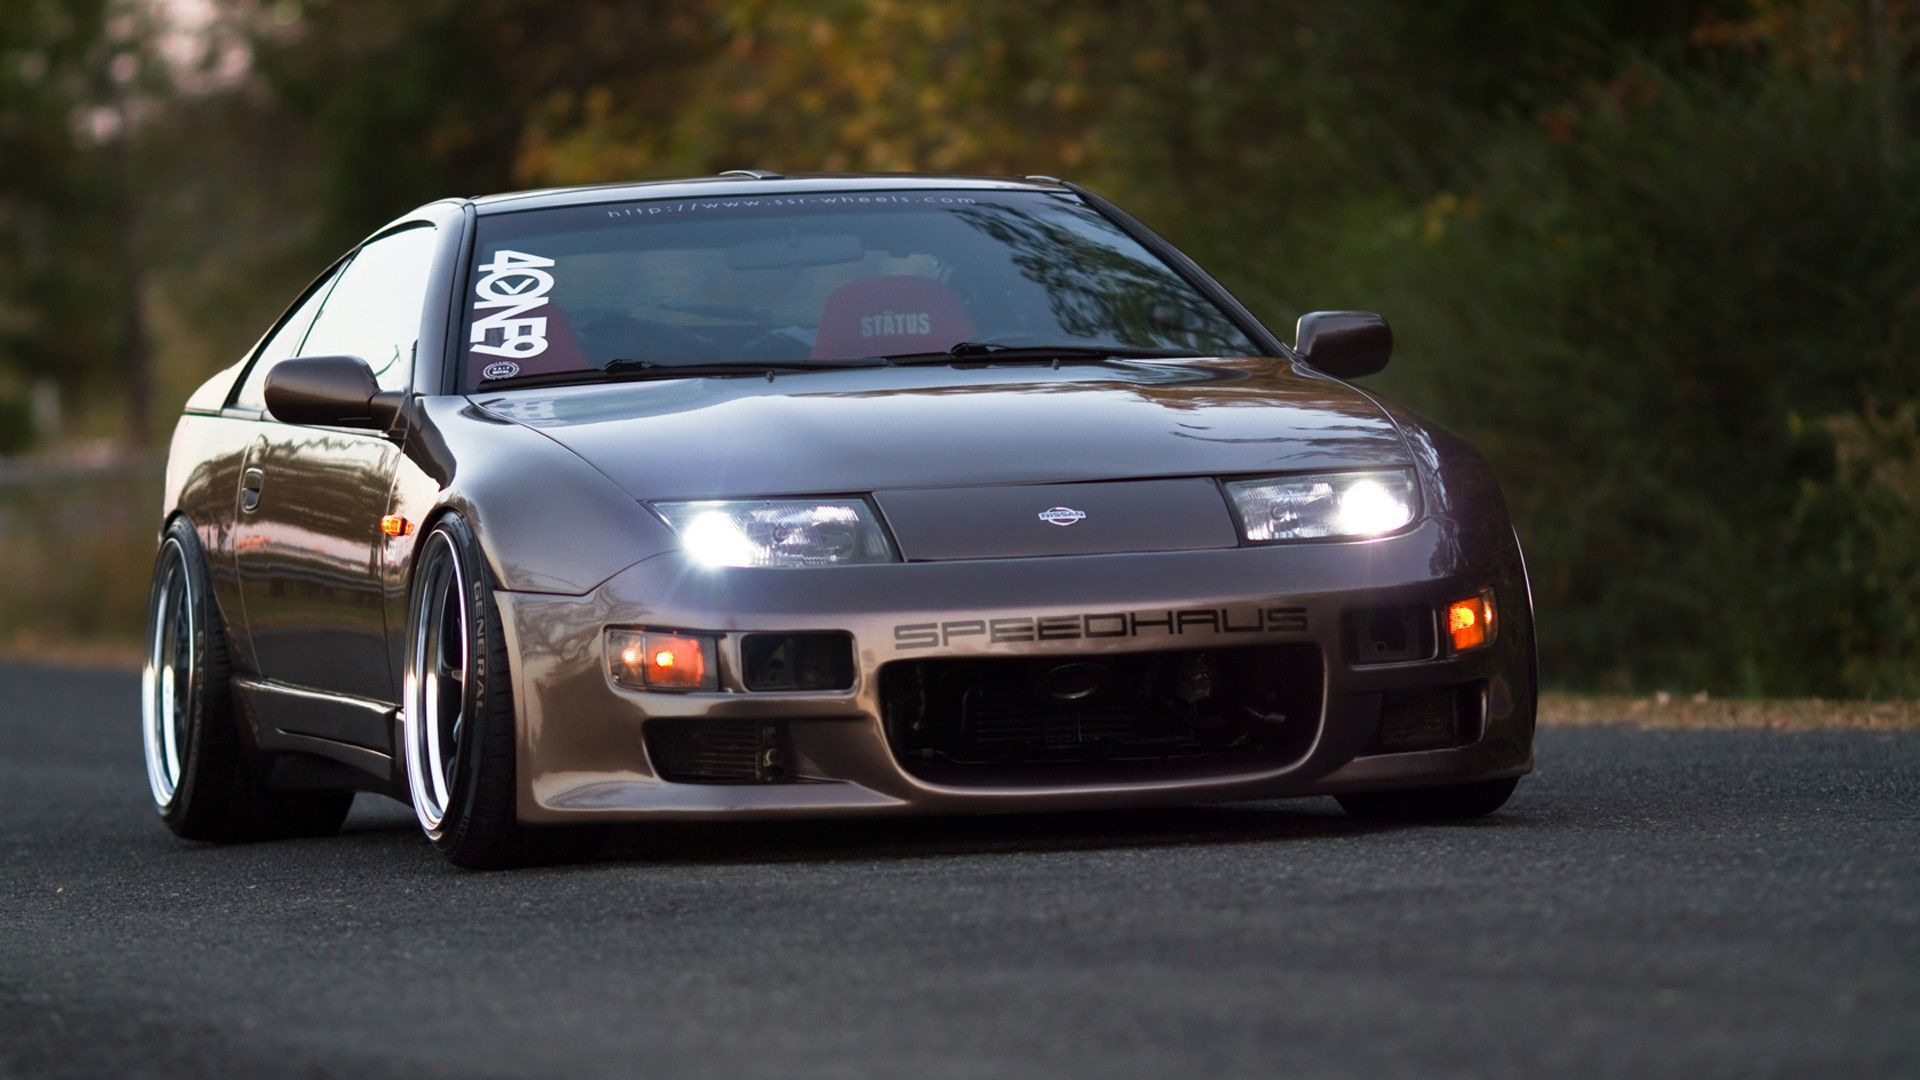 nissan 300zx wallpapers images photos pictures backgrounds. Black Bedroom Furniture Sets. Home Design Ideas